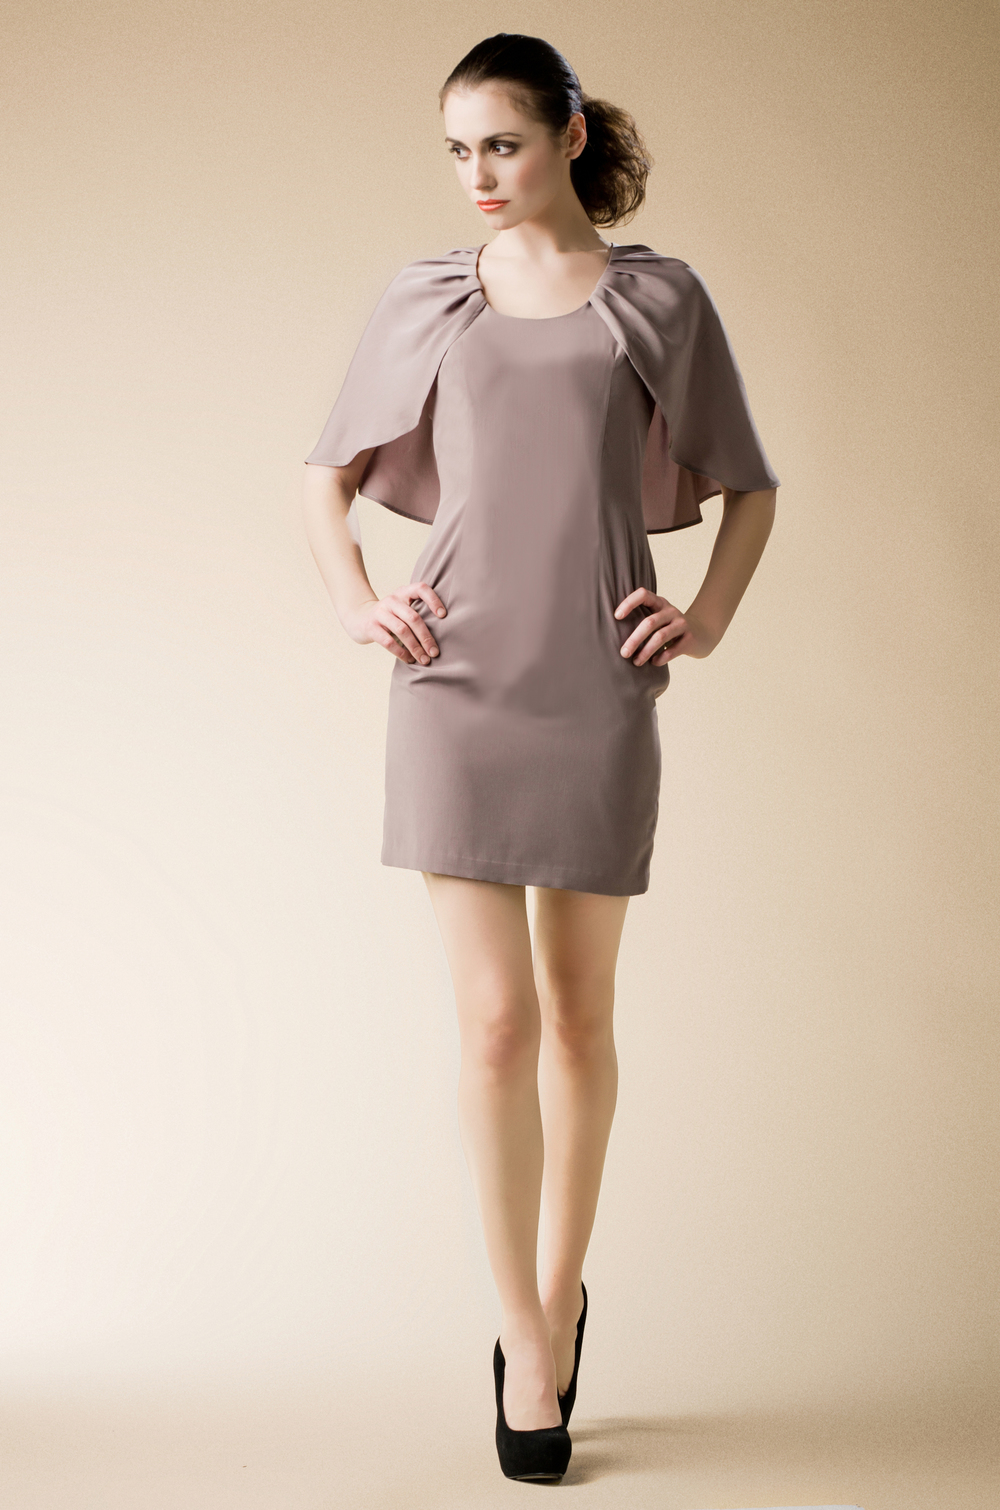 AW12_Alda Dress(my edits).jpg